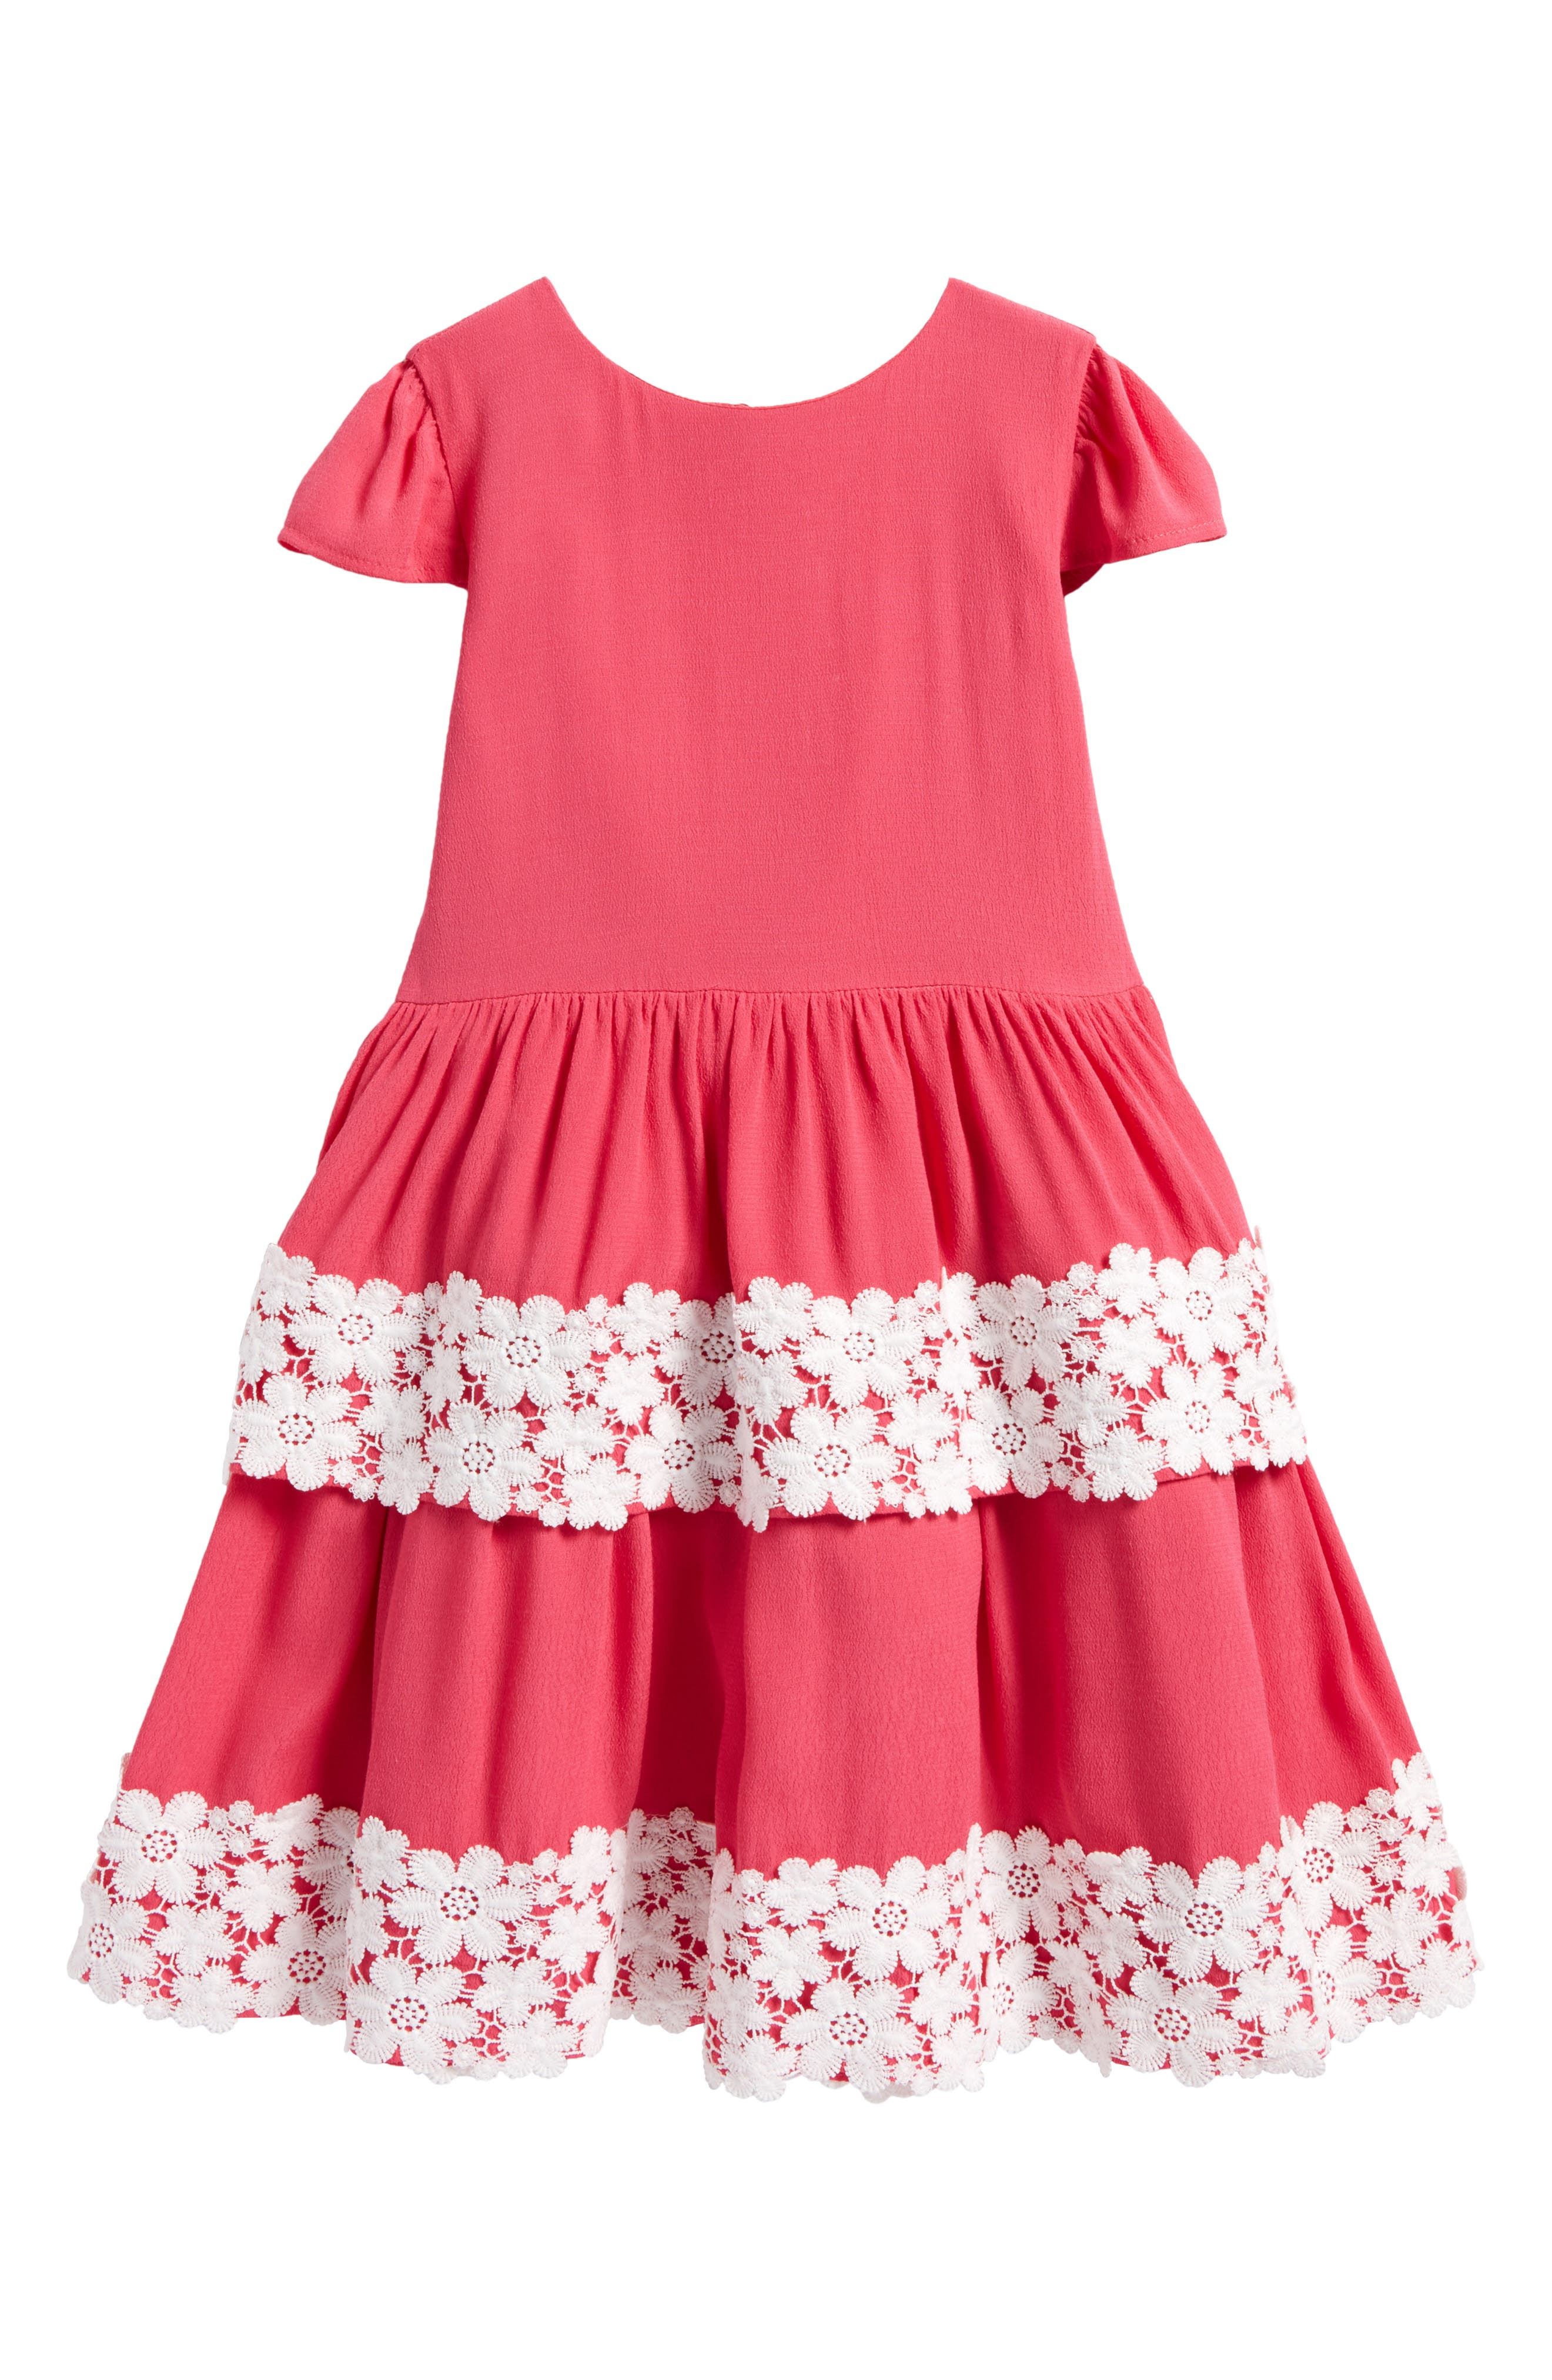 Tiered Skirt Dress,                         Main,                         color, Calypso Coral